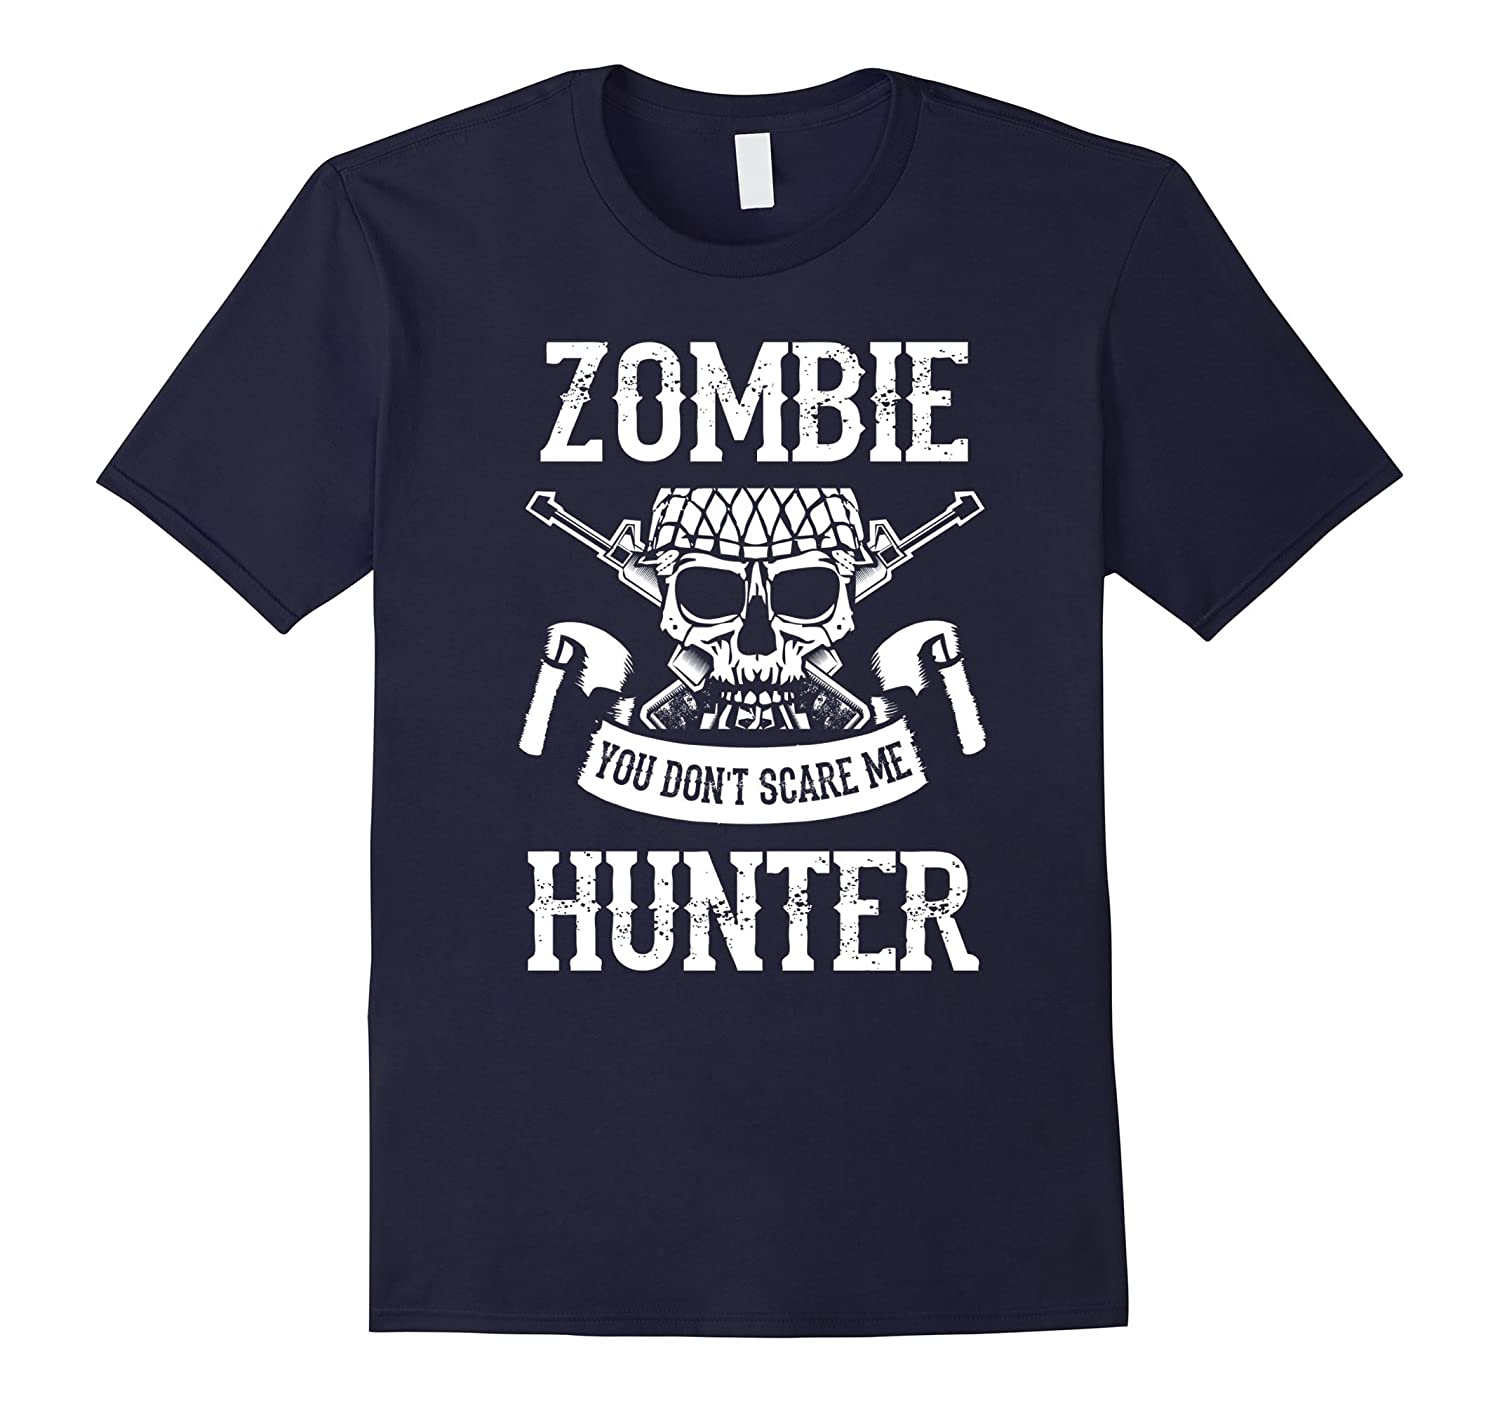 Zombie Hunter You Don't Scare Me T-Shirt-Rose